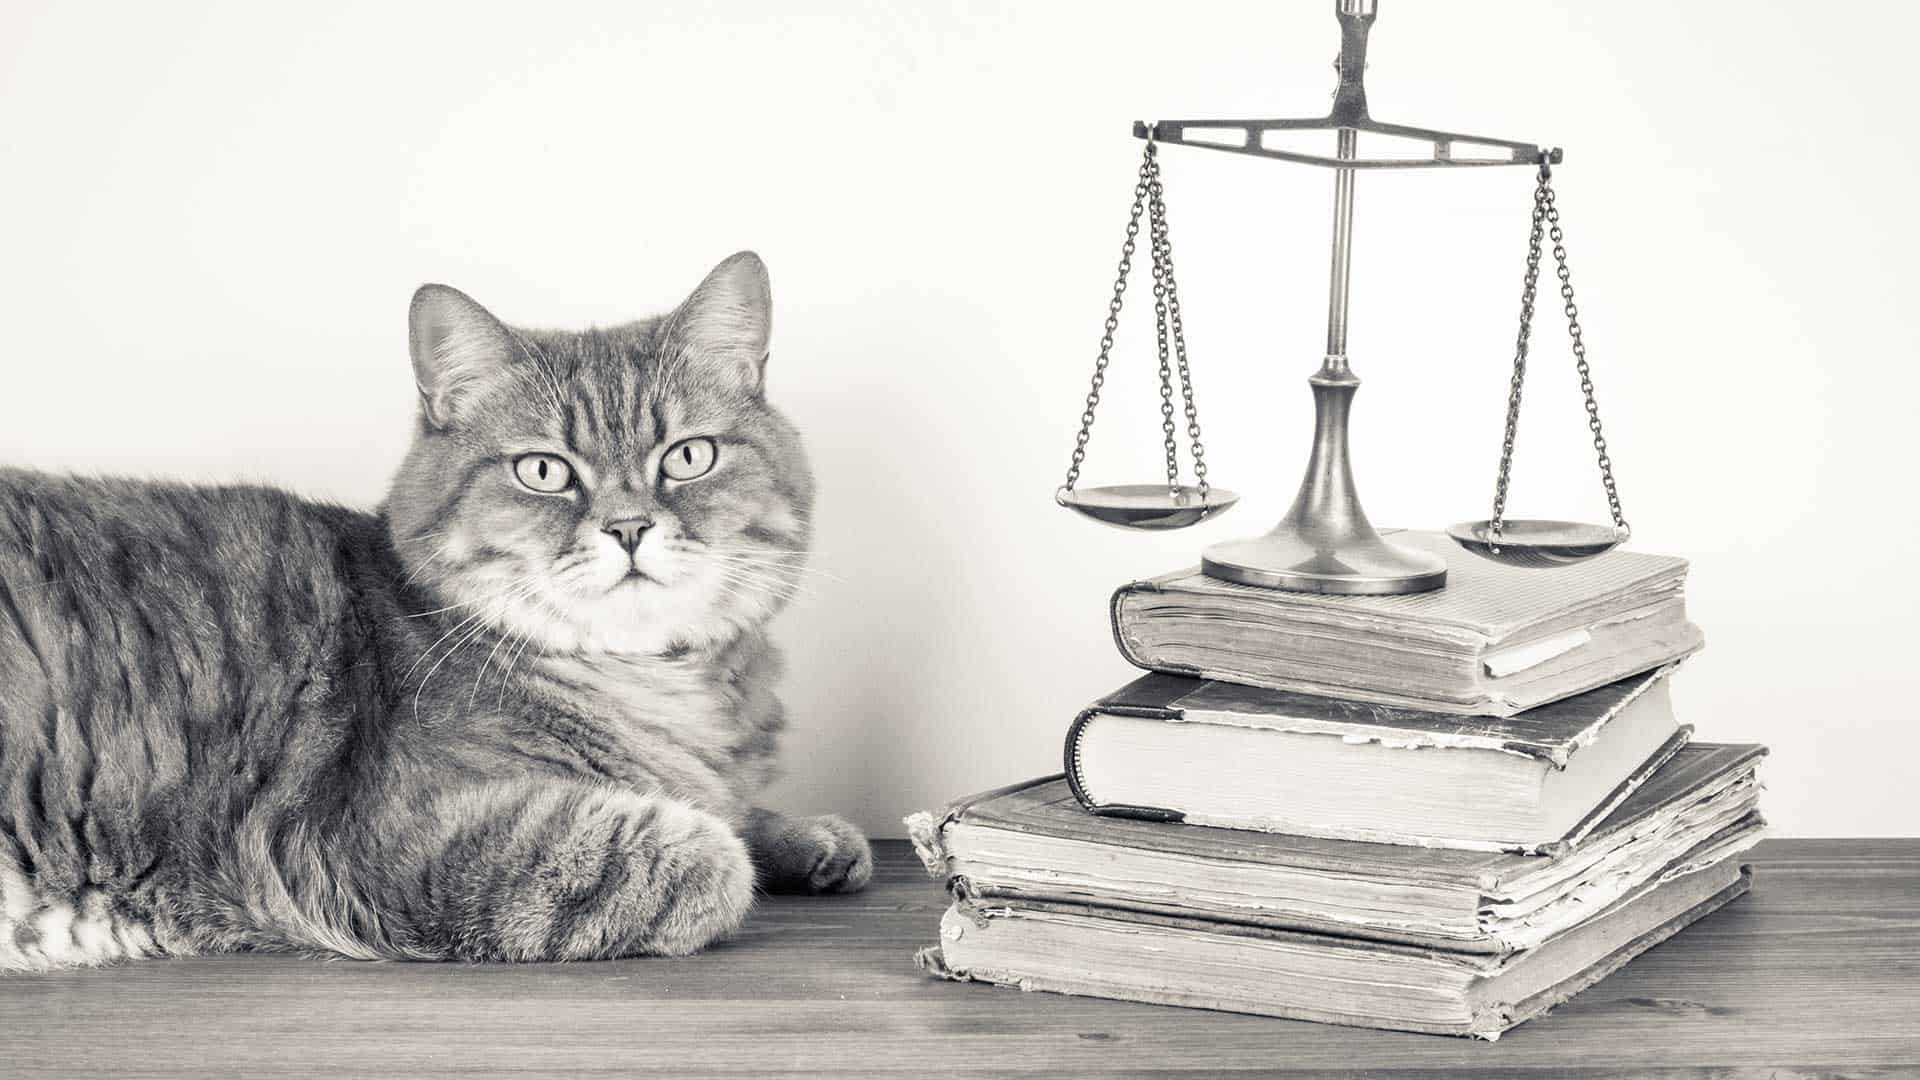 Legal cat with the scales of justice and law books